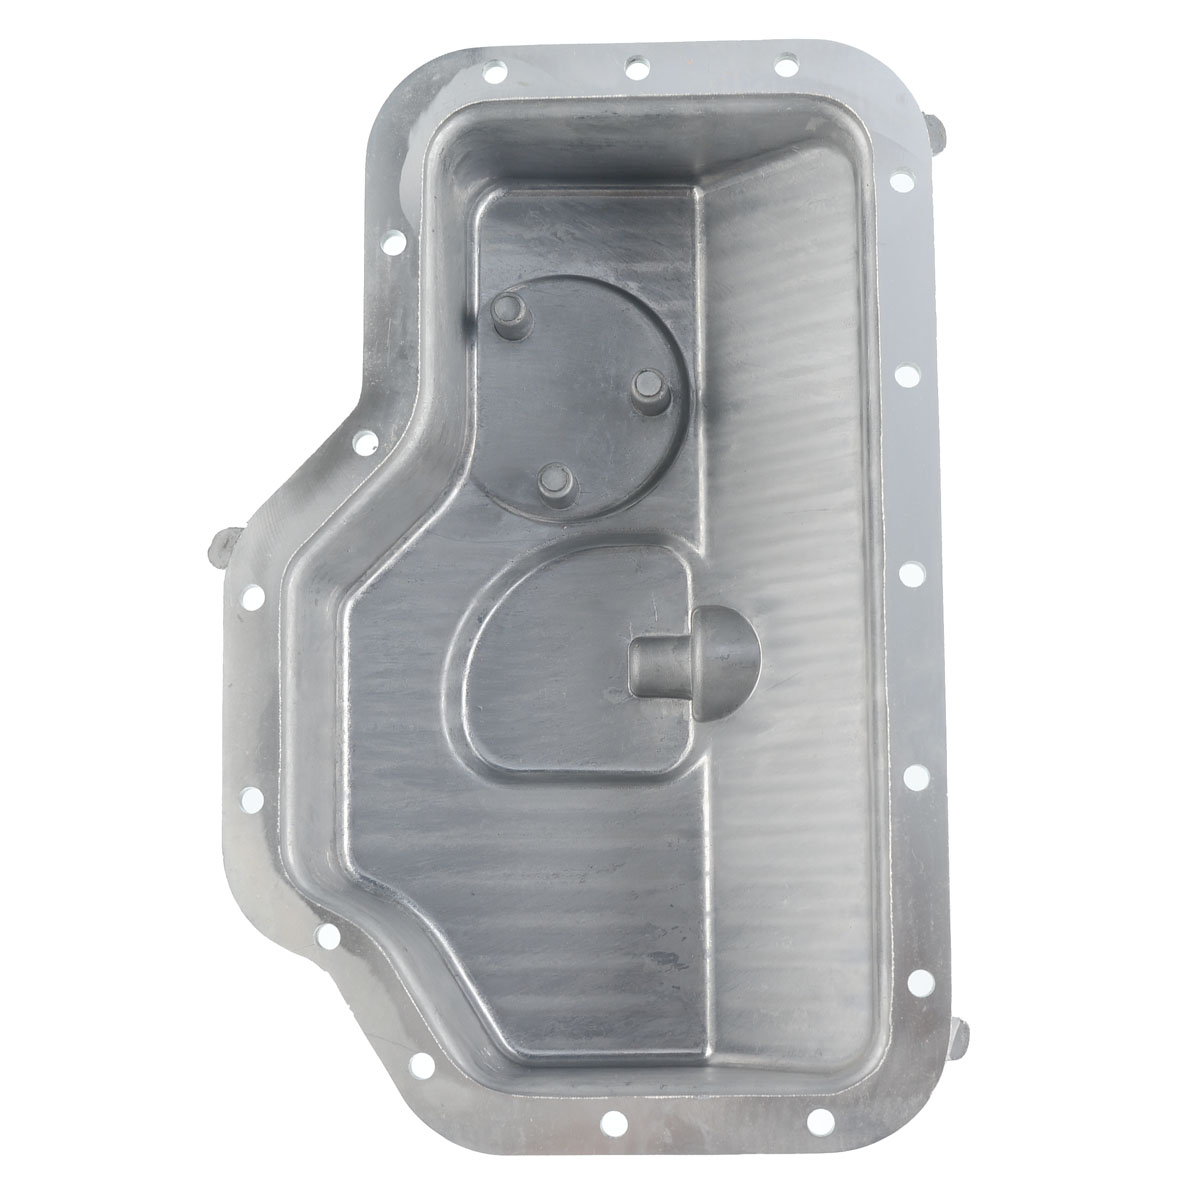 Lower Engine Oil Pan for BMW E30 Series 318i 318is 1991 1992 1 8L 11131715266